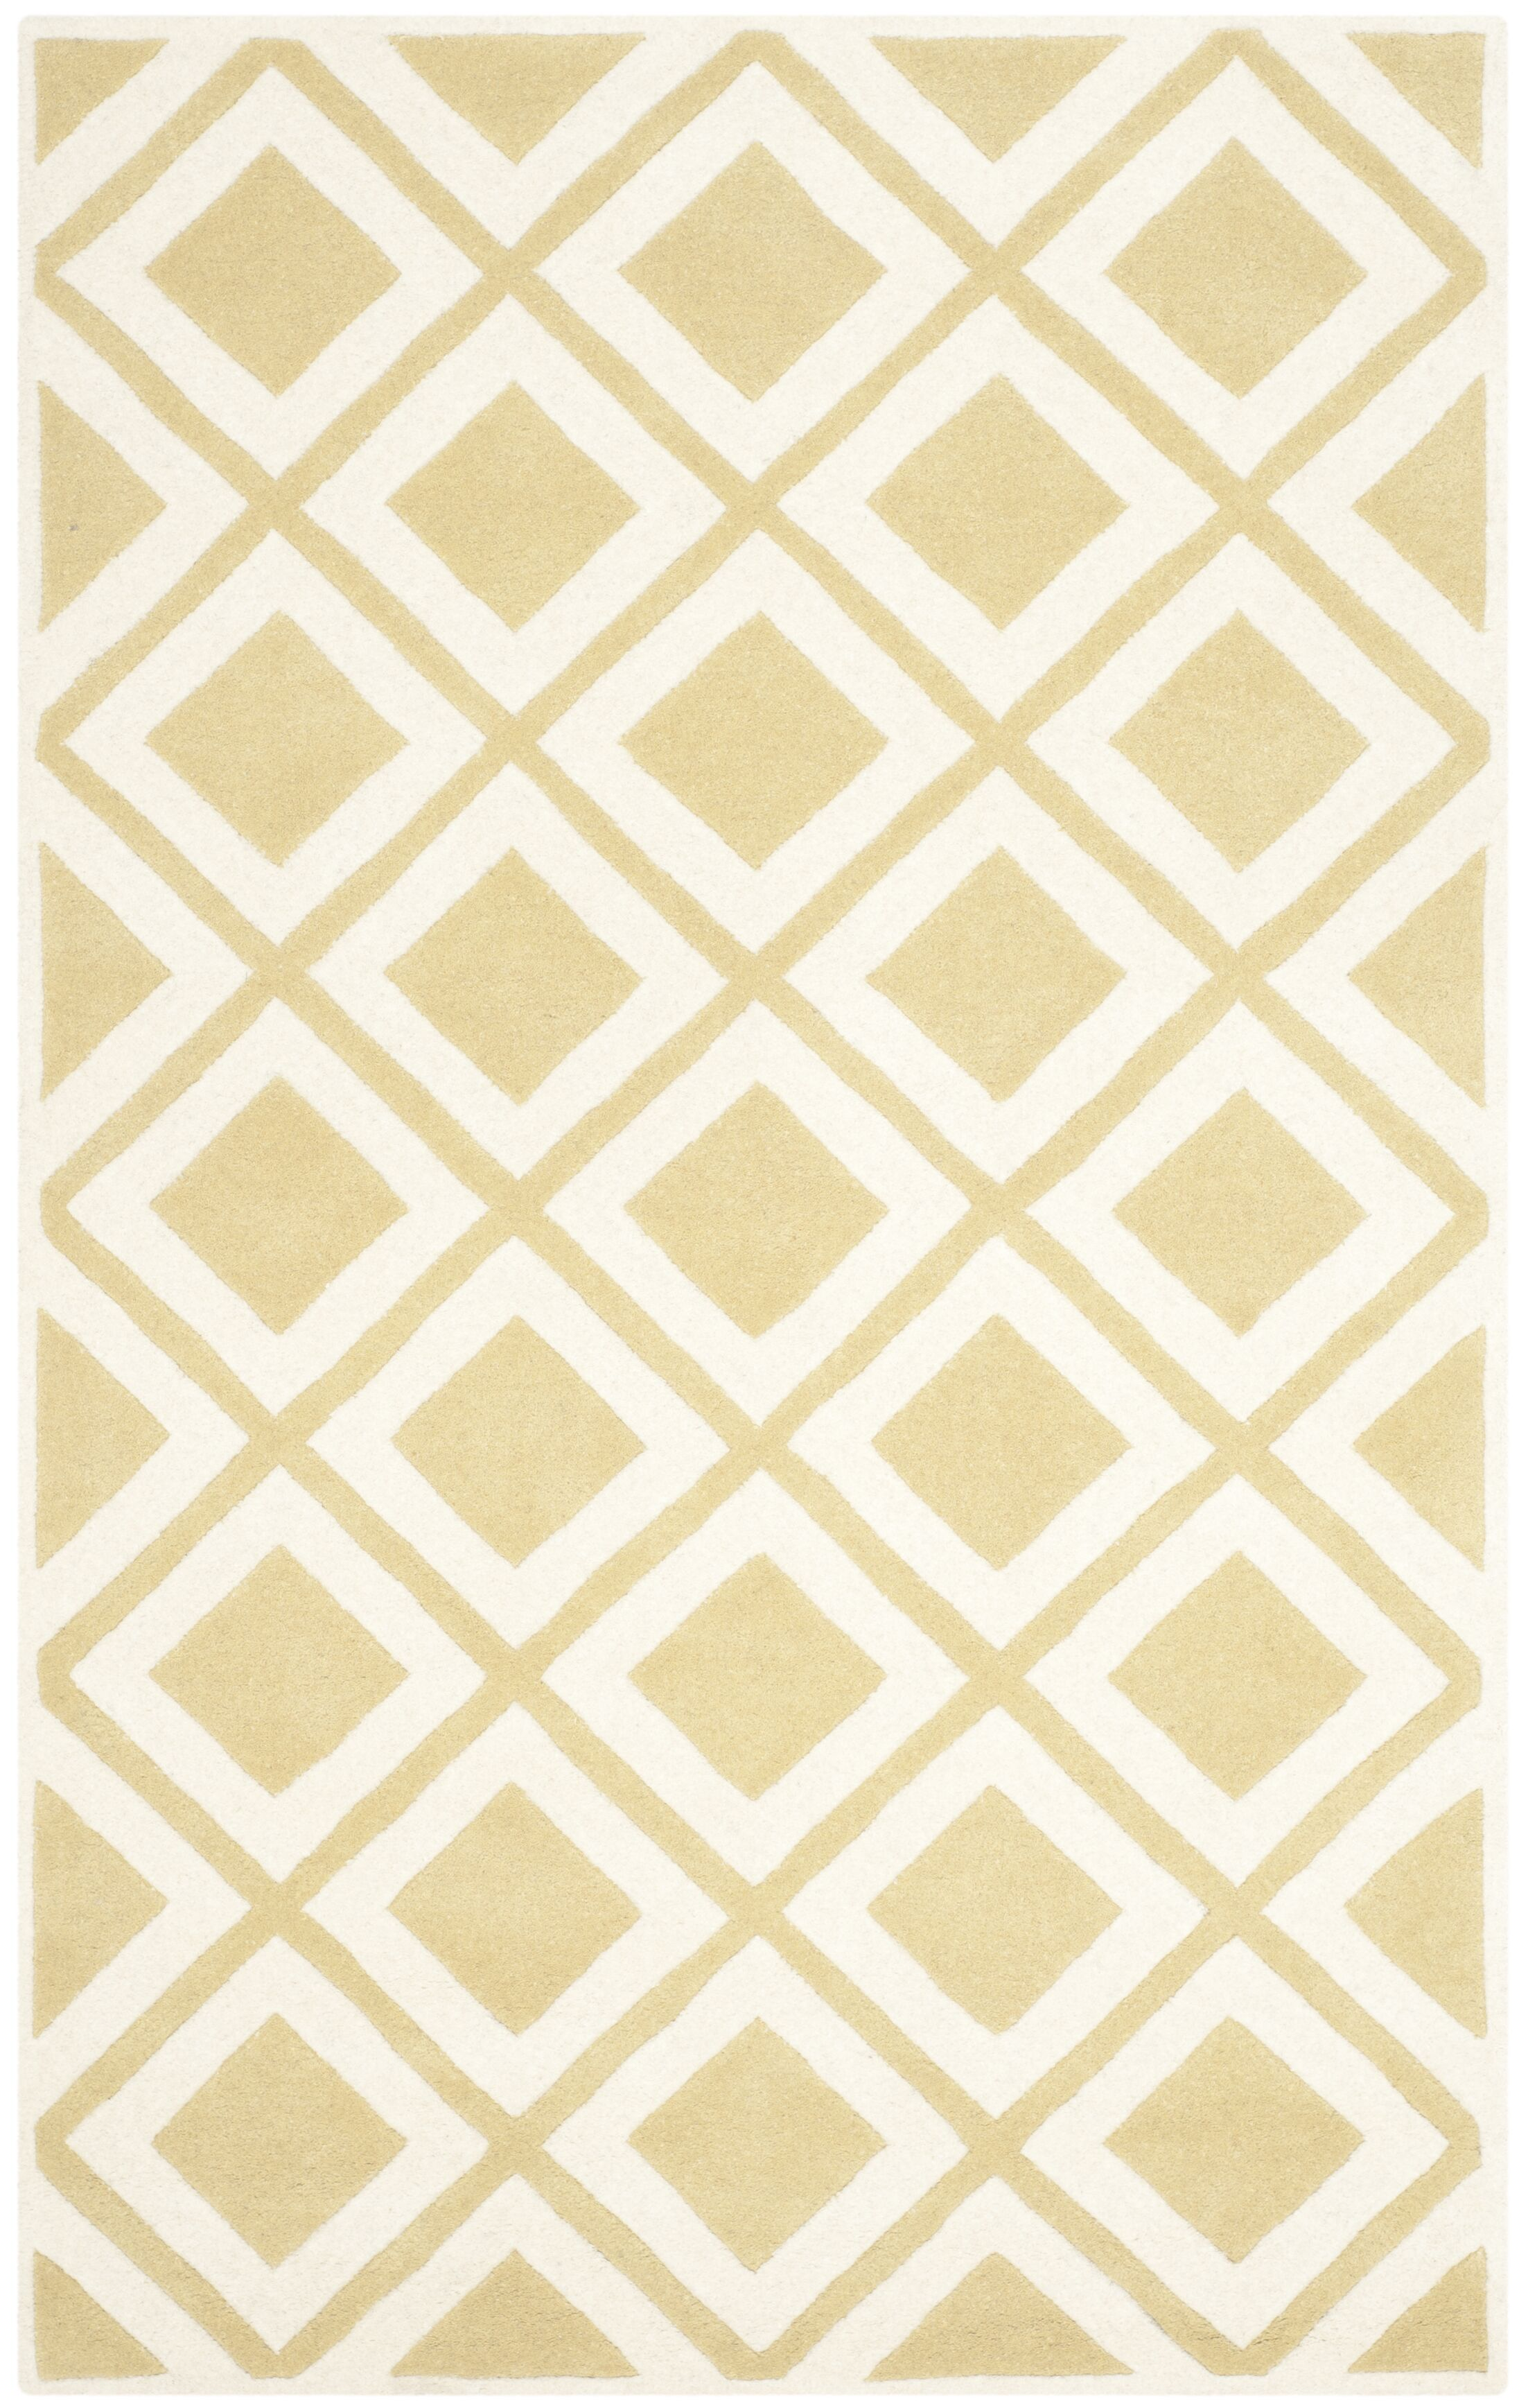 Wilkin Gold/Ivory Area Rug Rug Size: Rectangle 4' x 6'